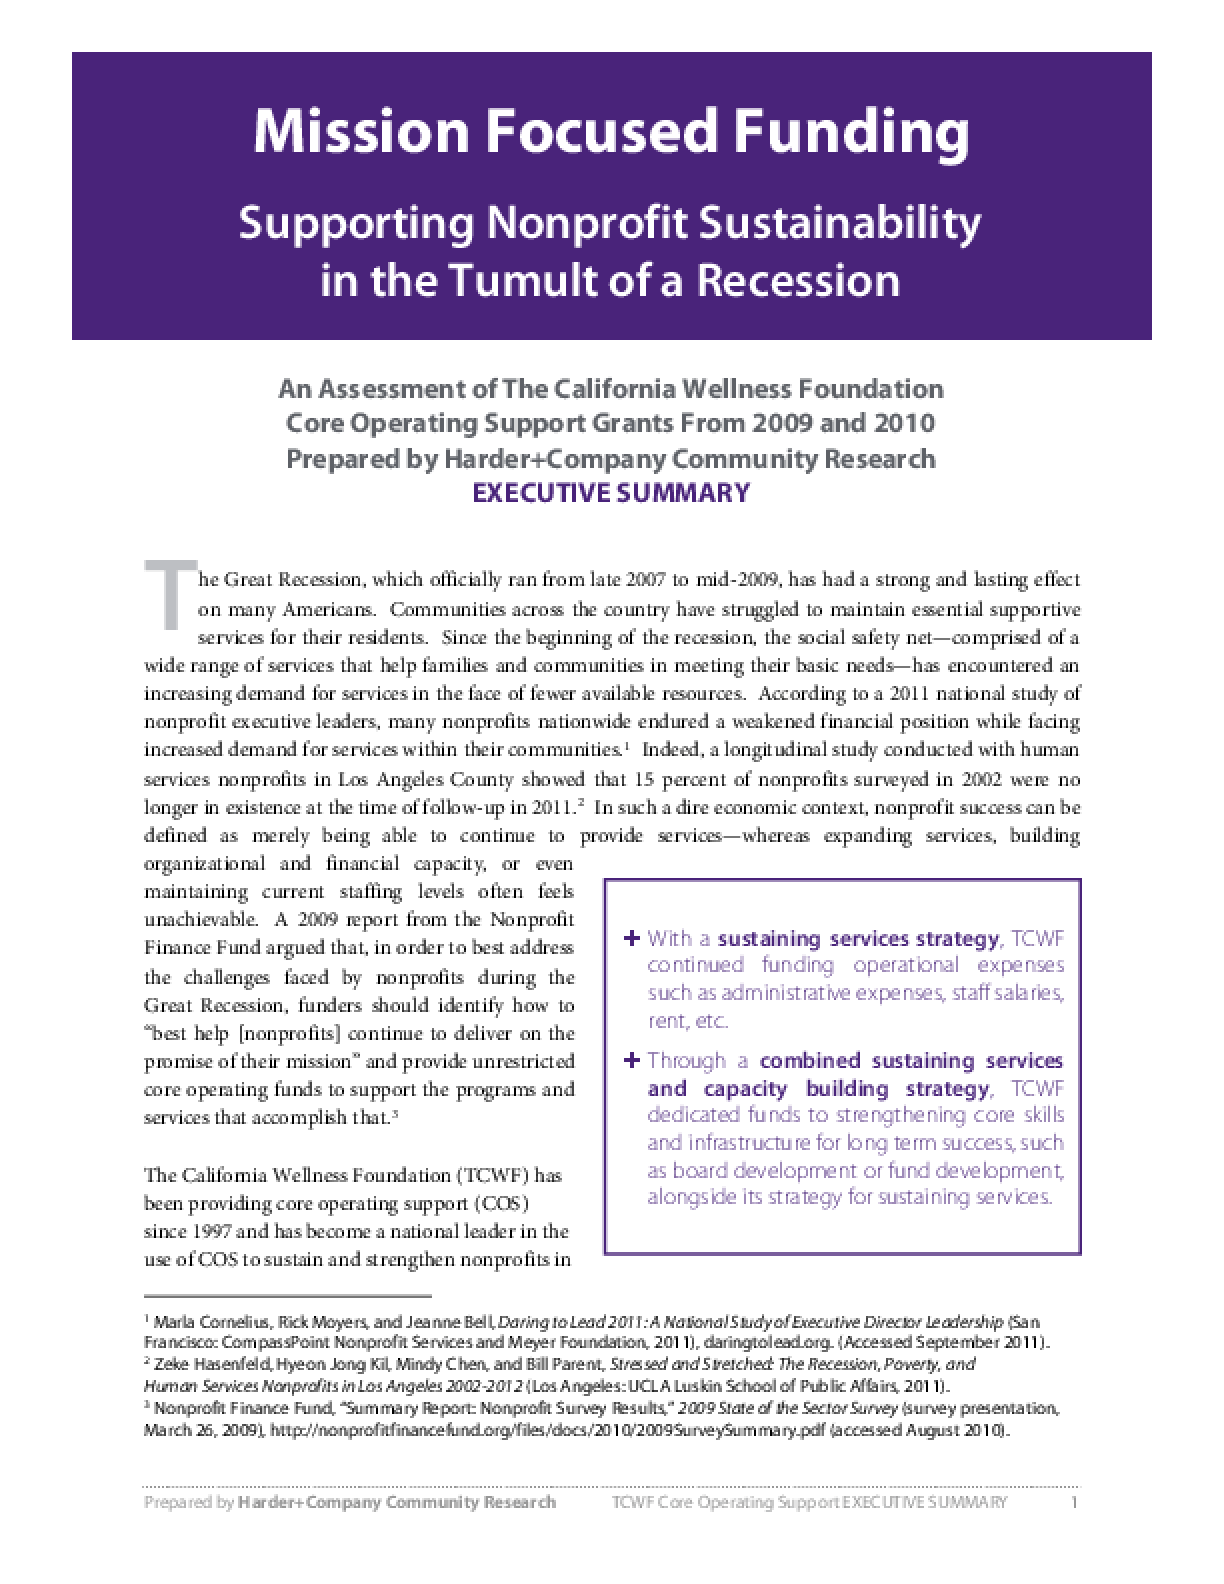 Mission Focused Funding Supporting Nonprofit Sustainability in the Tumult of a Recession